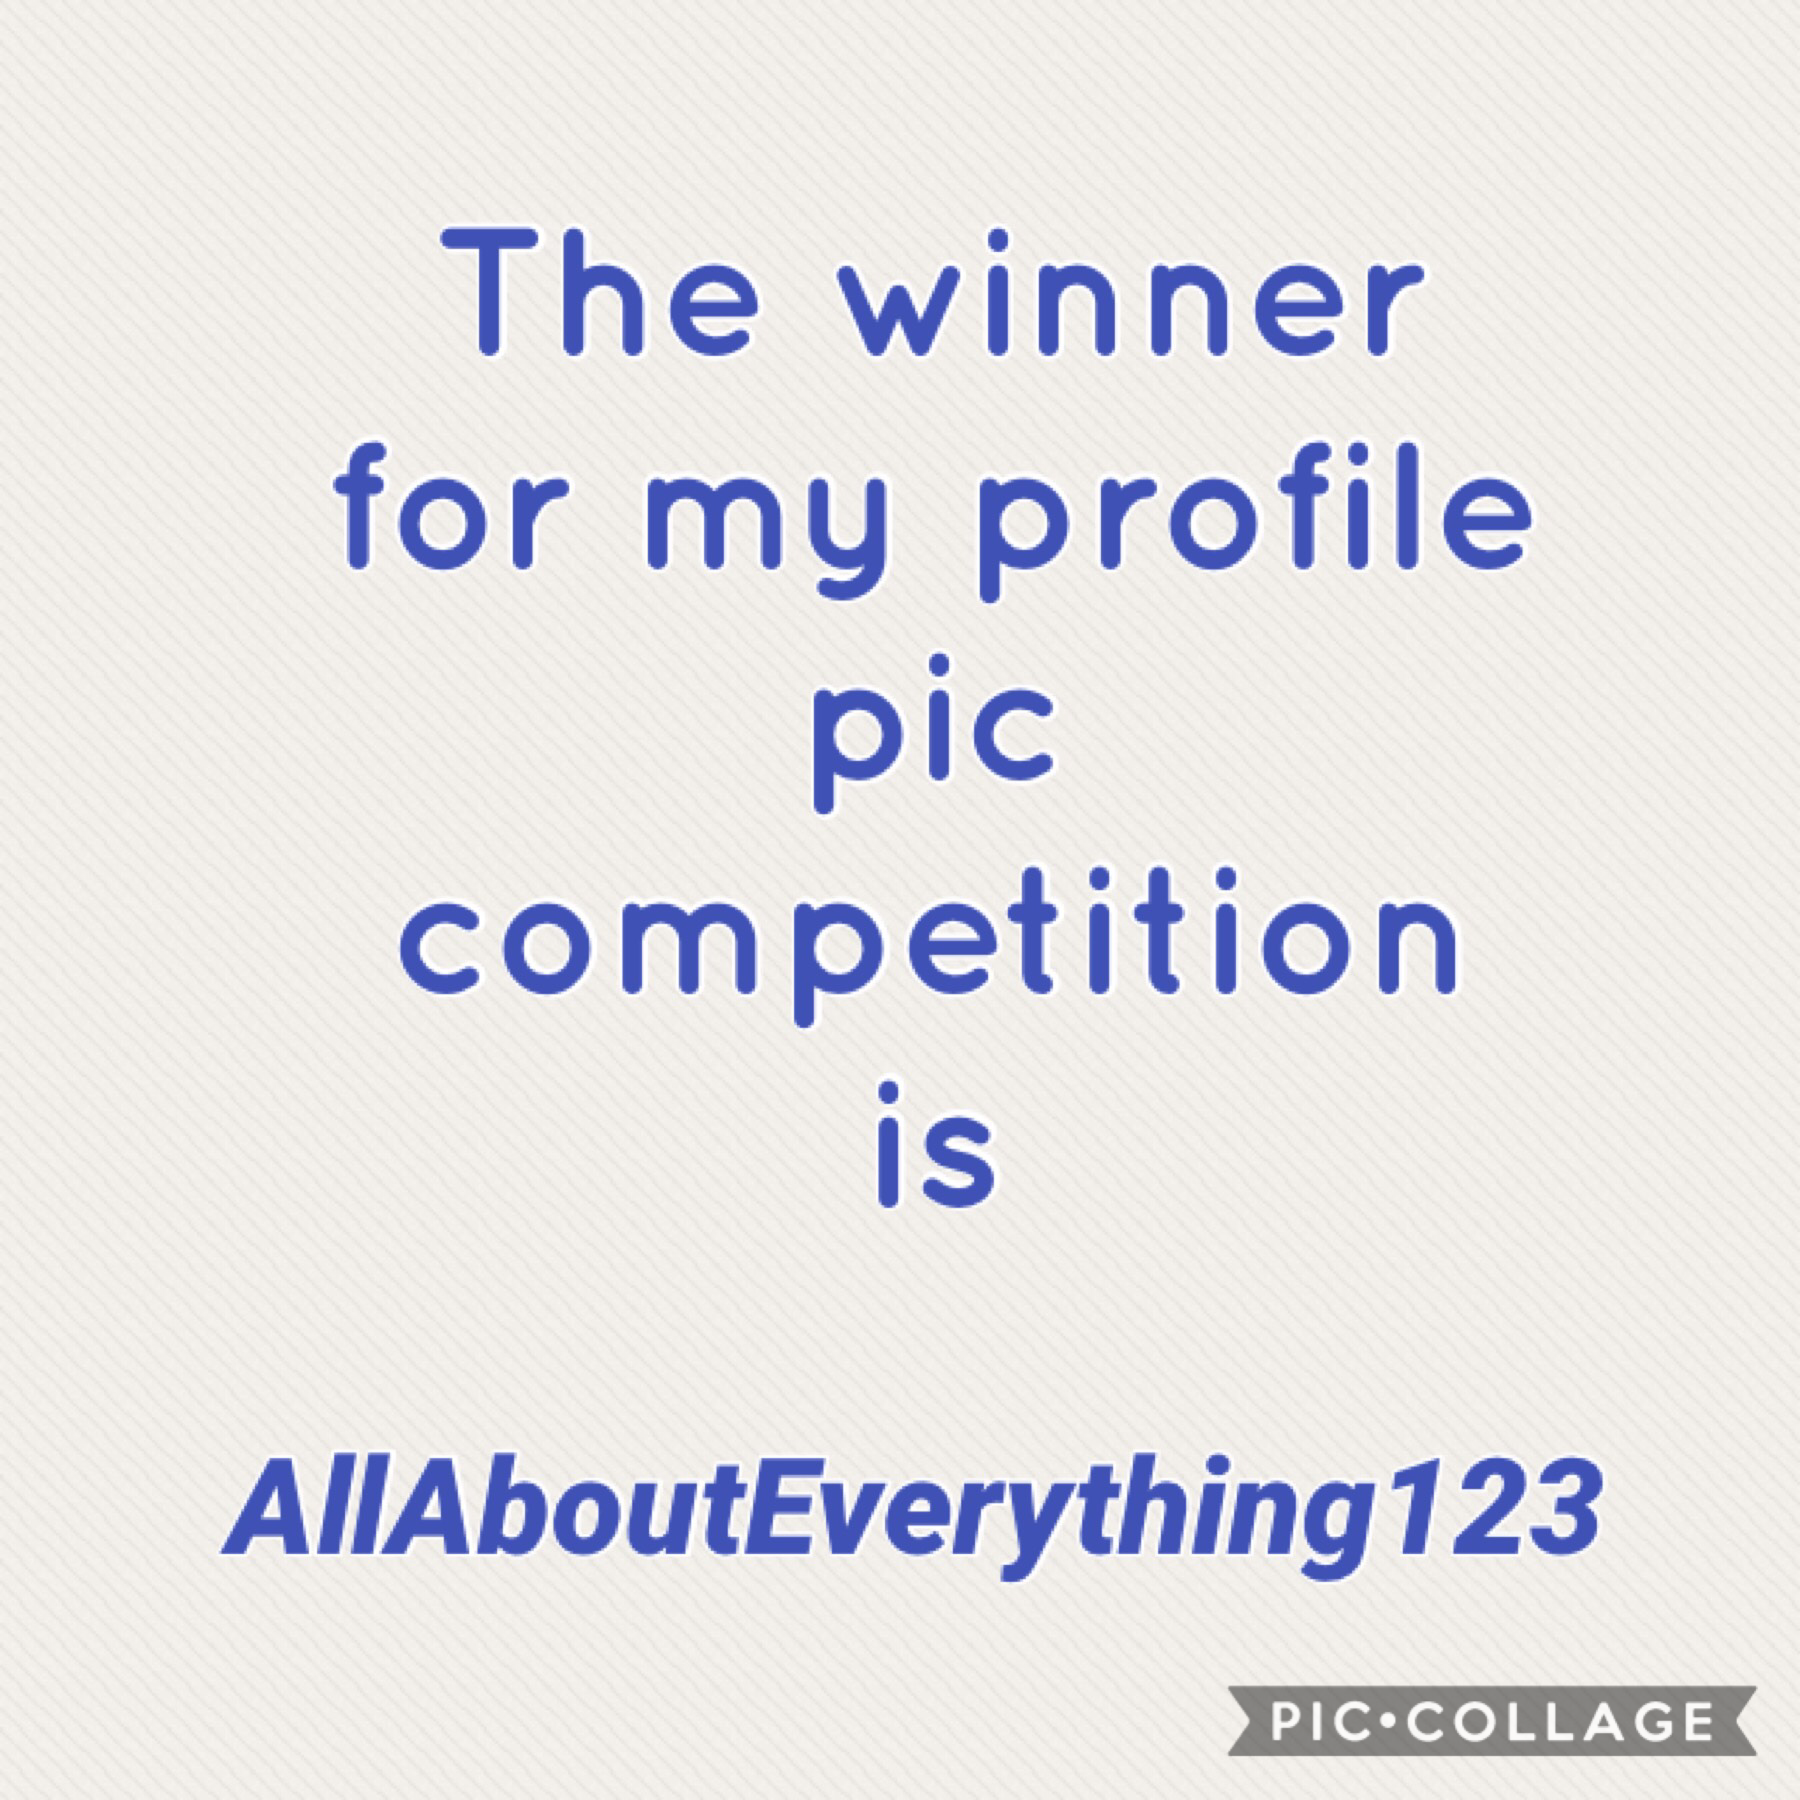 You can see the winning profile pic... because it's mine. Bet you wish you had it